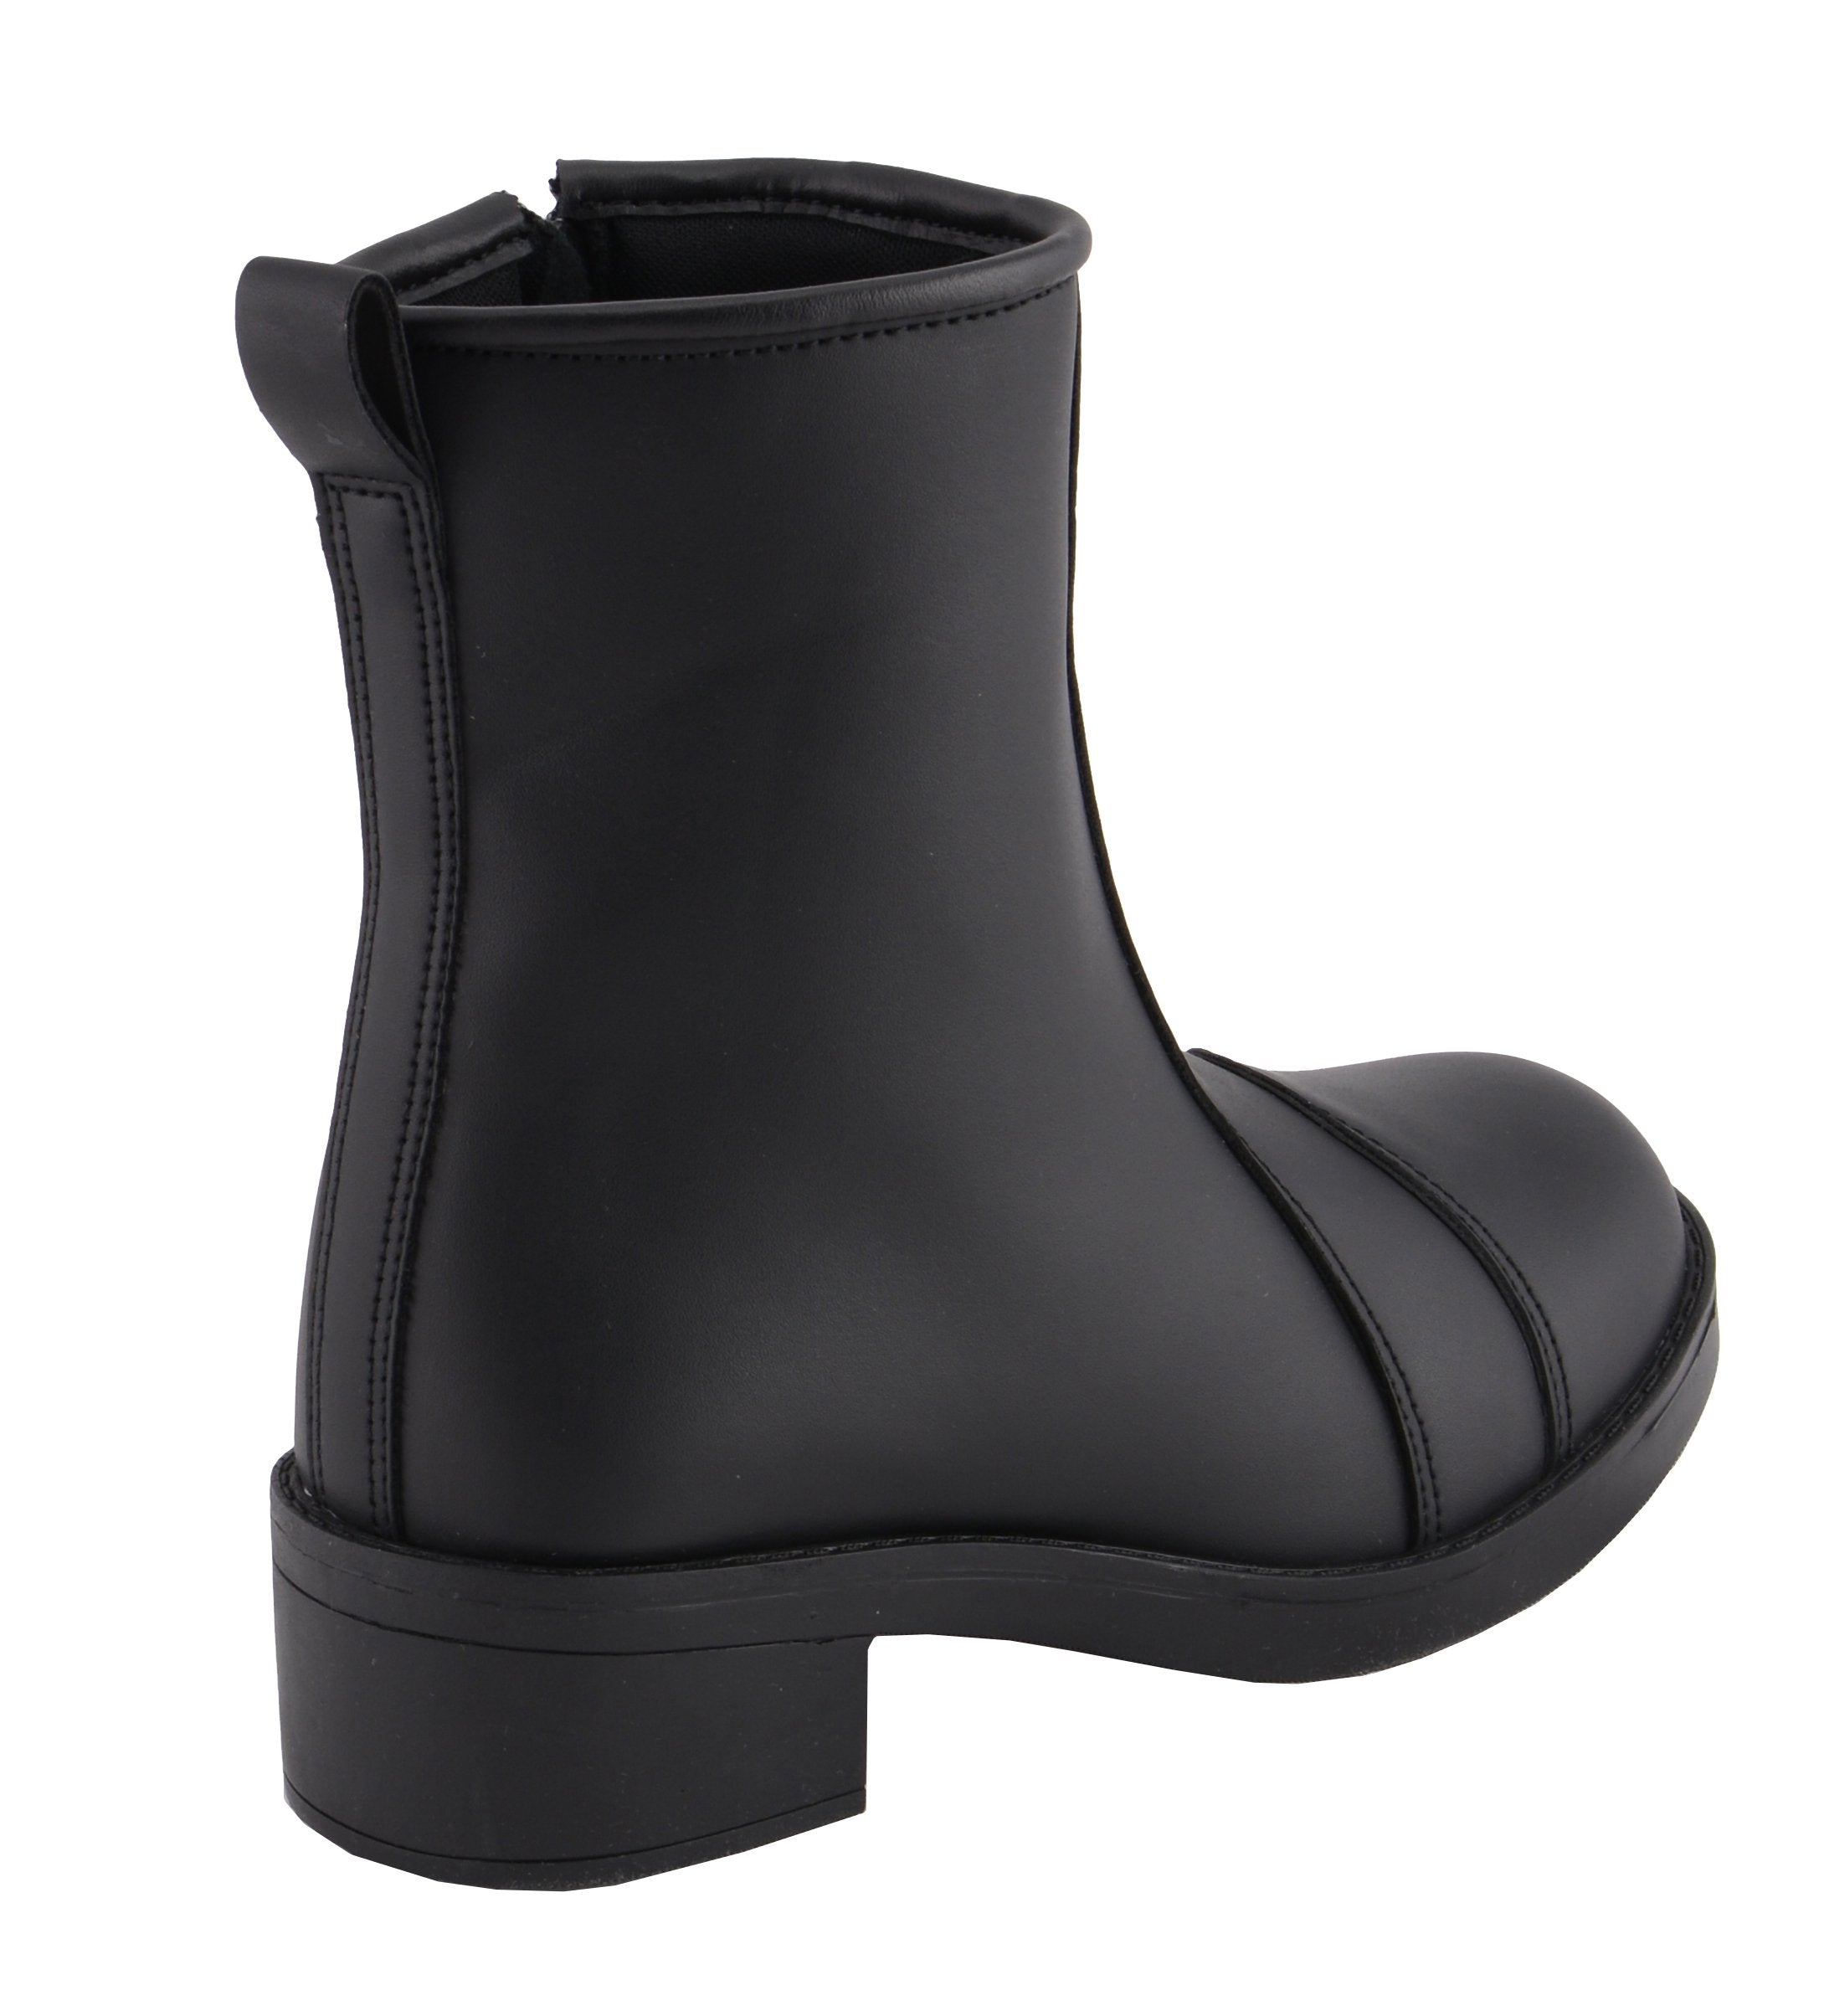 Milwaukee Leather MBL9485 Ladies Clean Riding Boot with Toe Cap